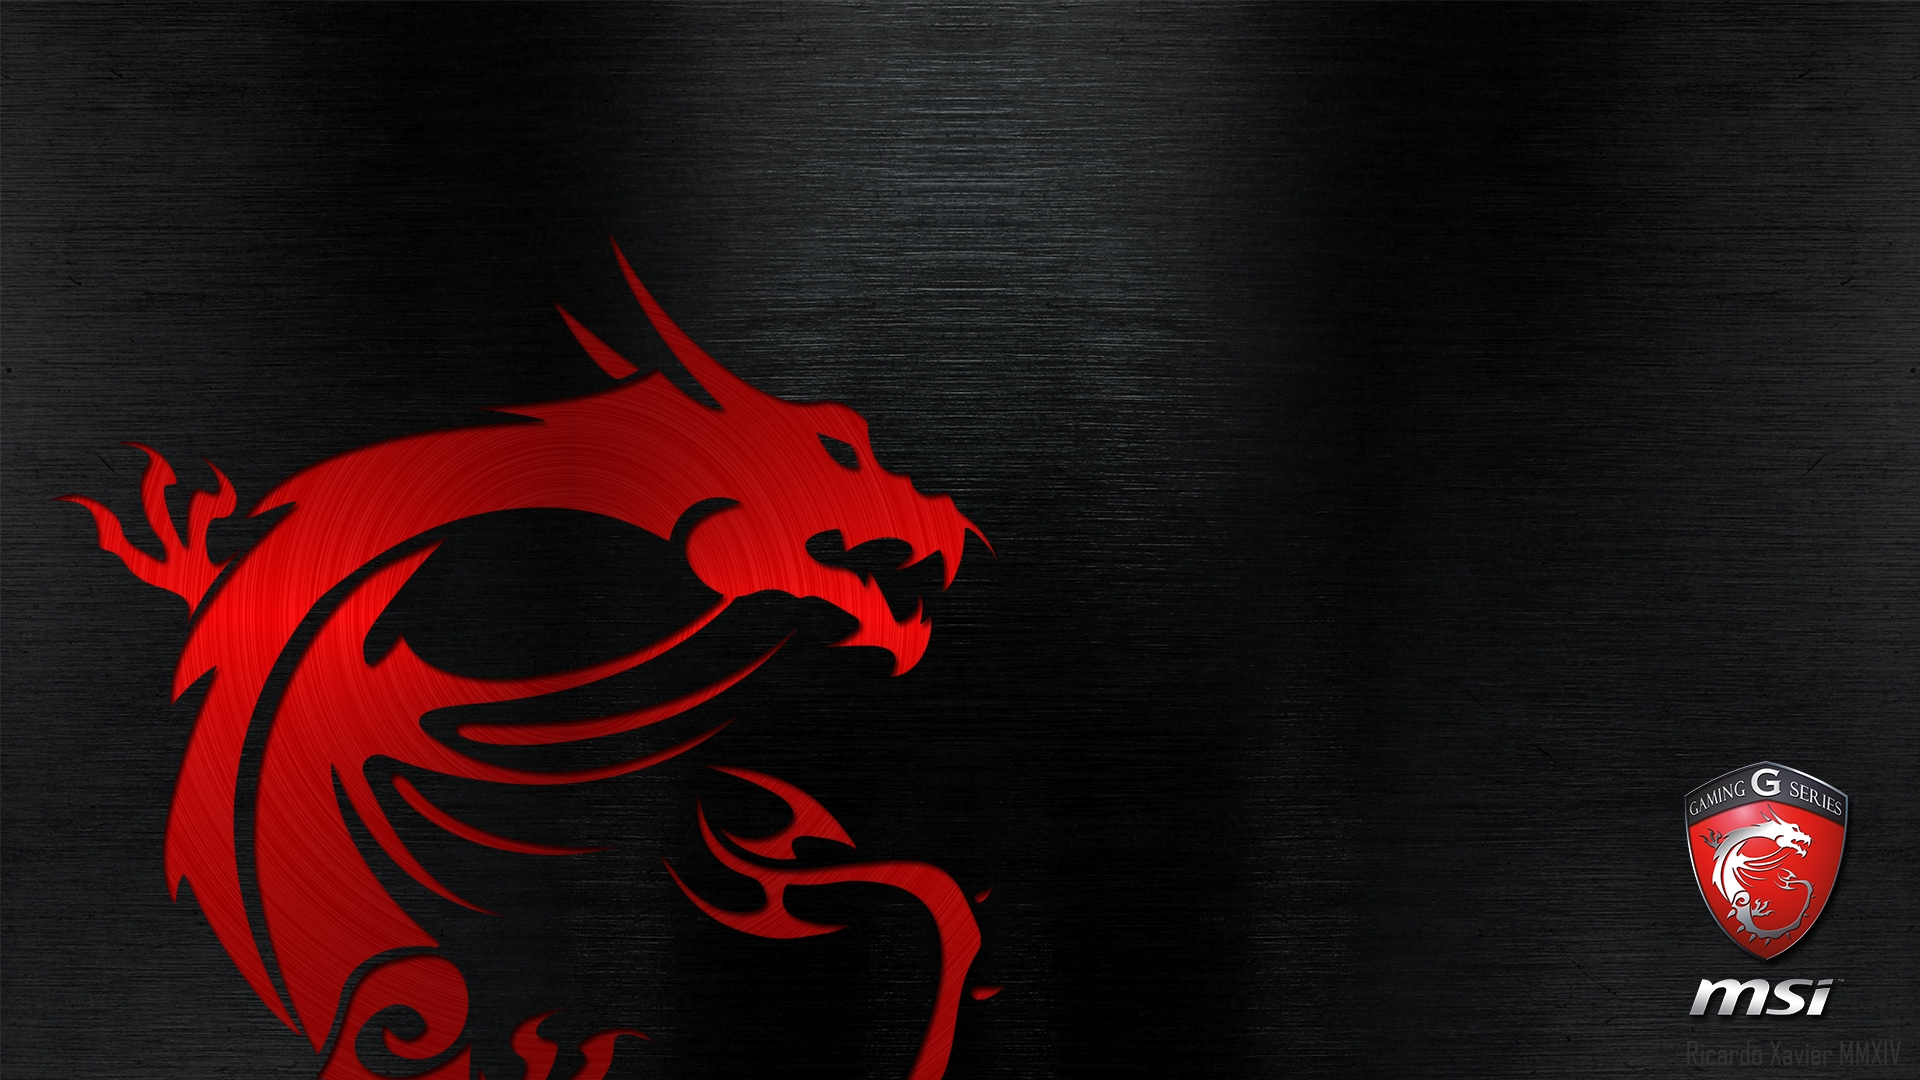 msi gaming wallpaper - red dragon emobossed (1920×1080) | msi